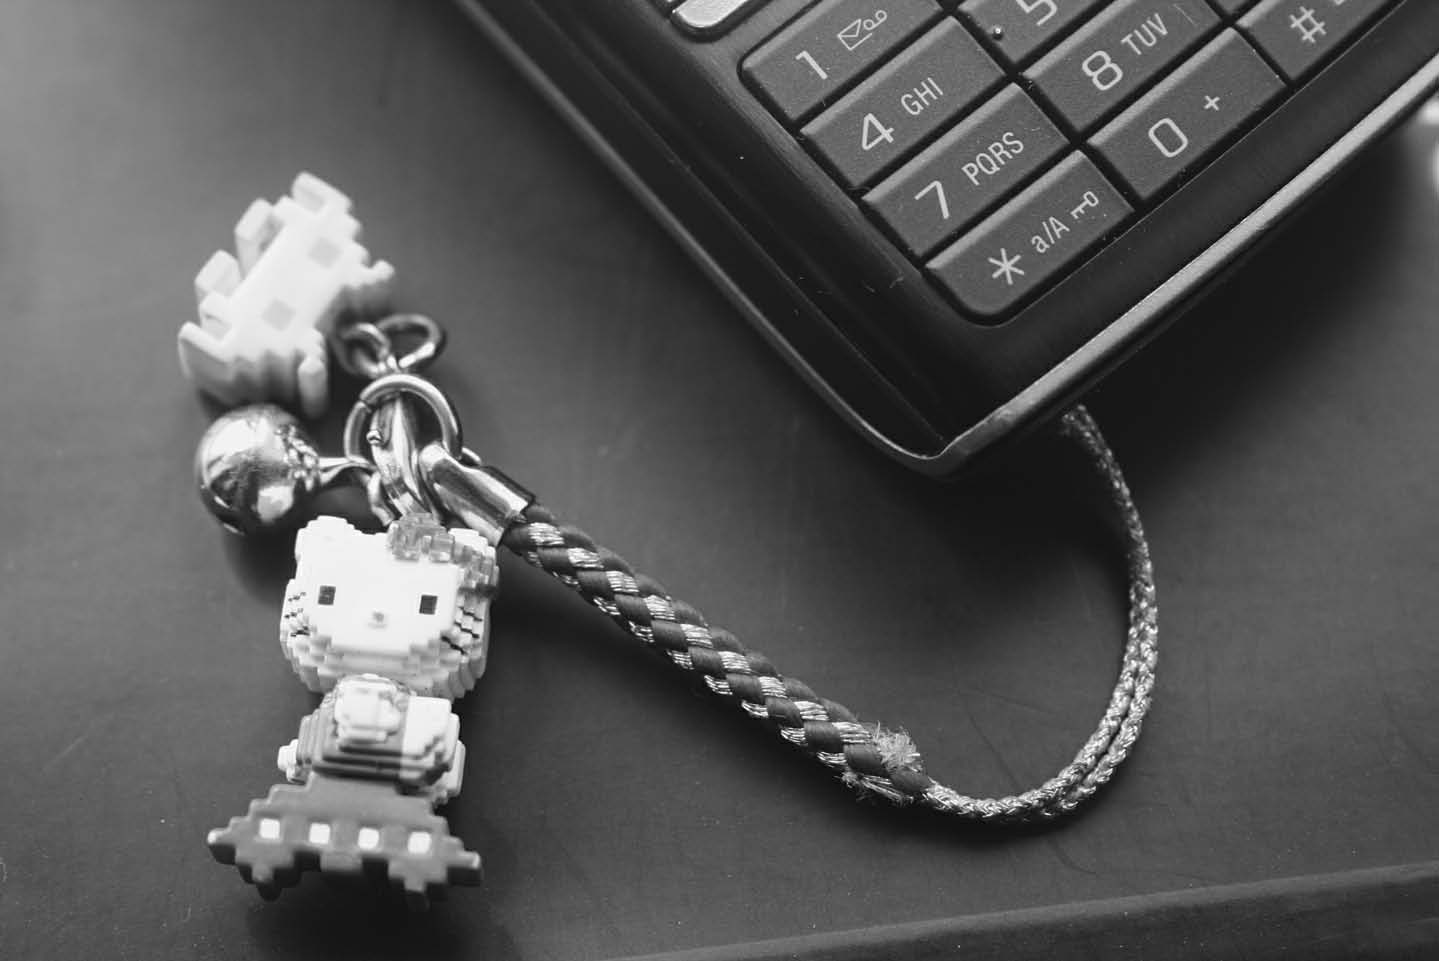 252 New media in everyday life CASE STUDY 4.1: The mobile phone: gadgets and play 4.6 Hello kitty!